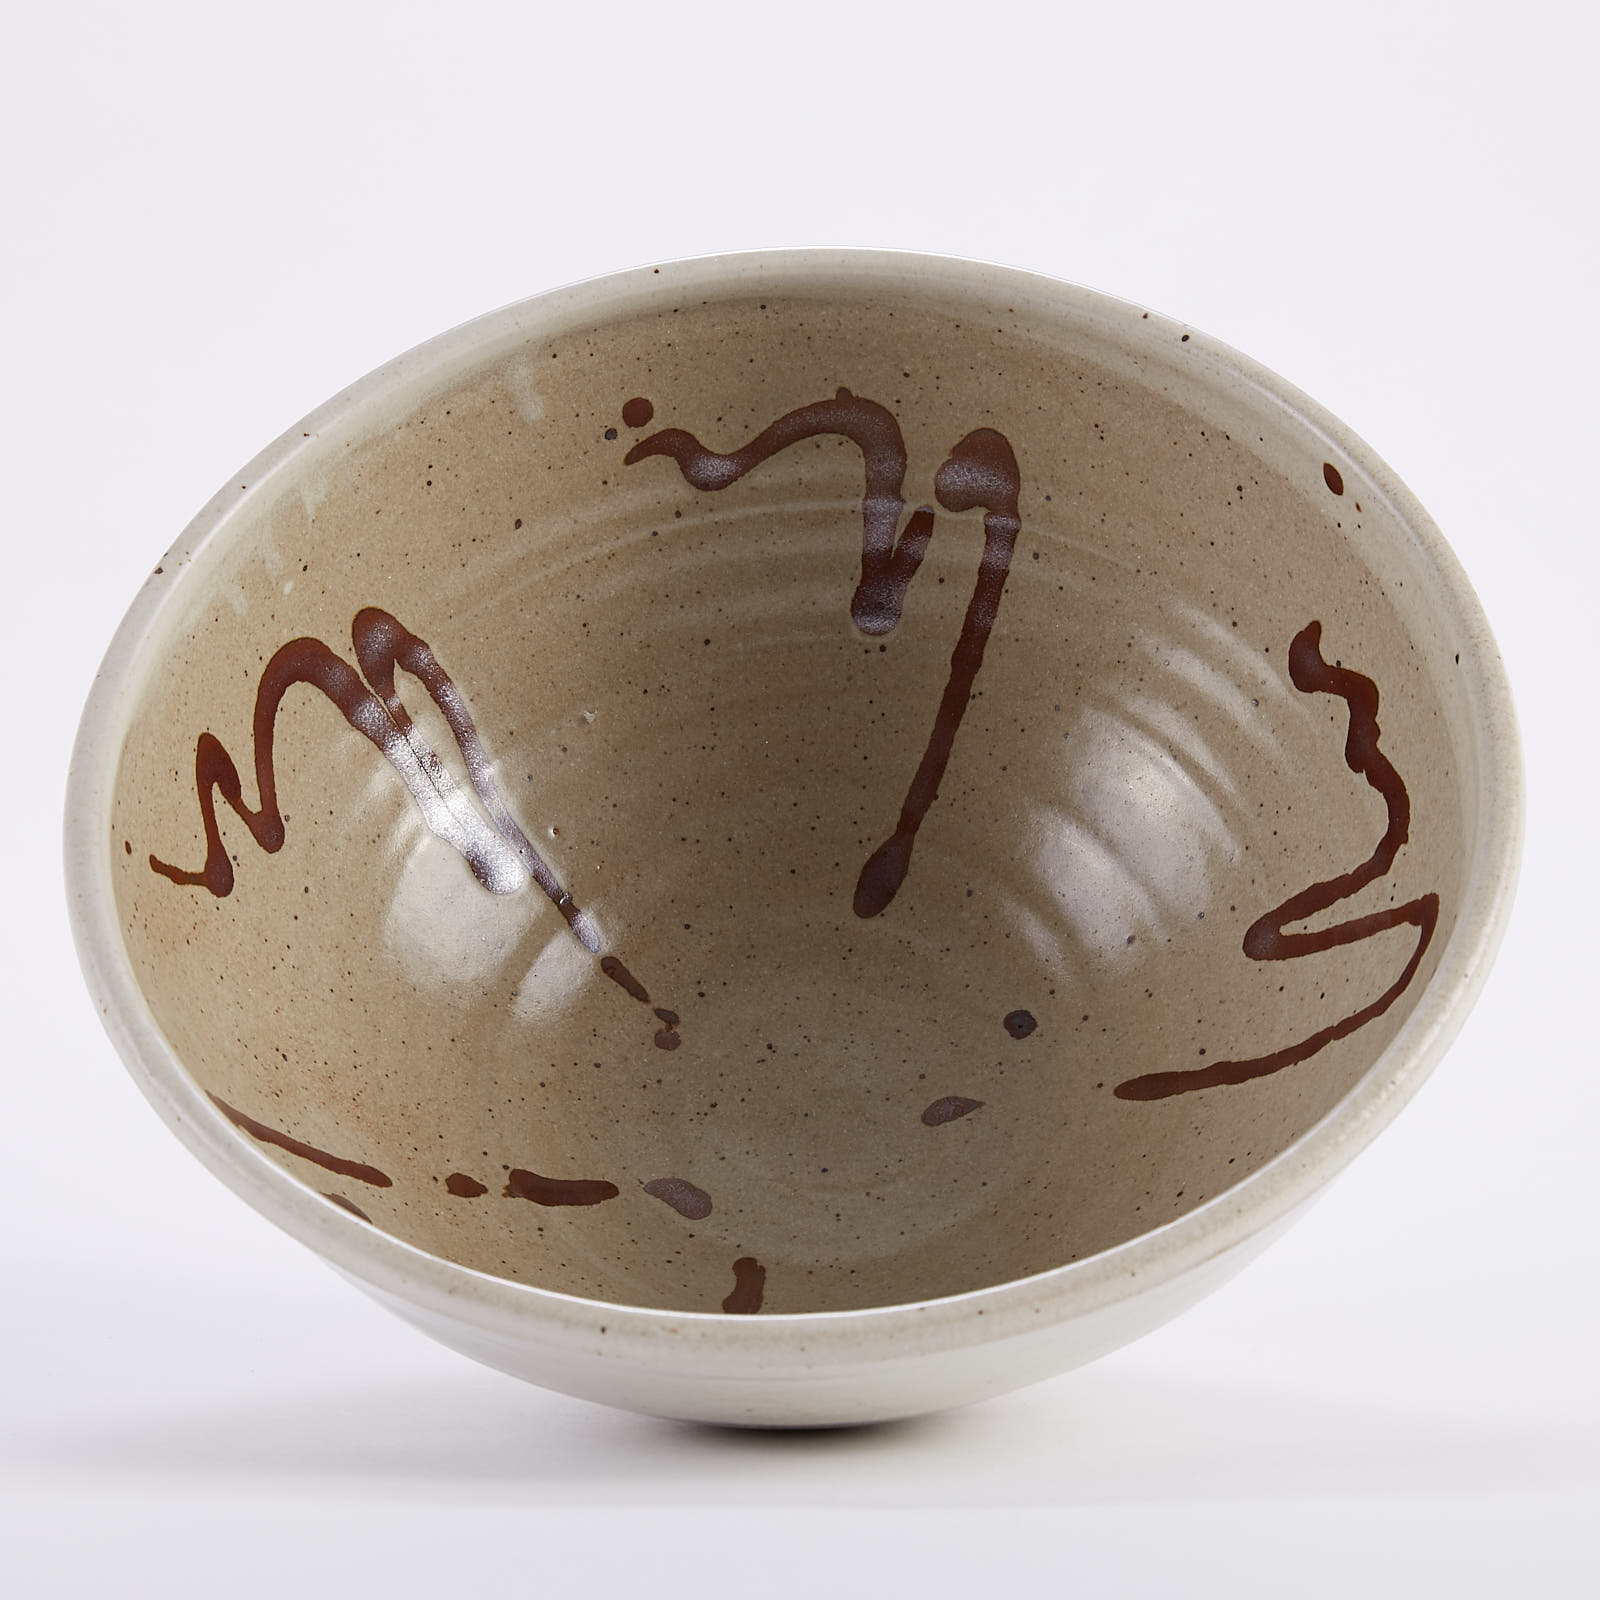 Lot 009: Warren MacKenzie Large Studio Pottery Bowl